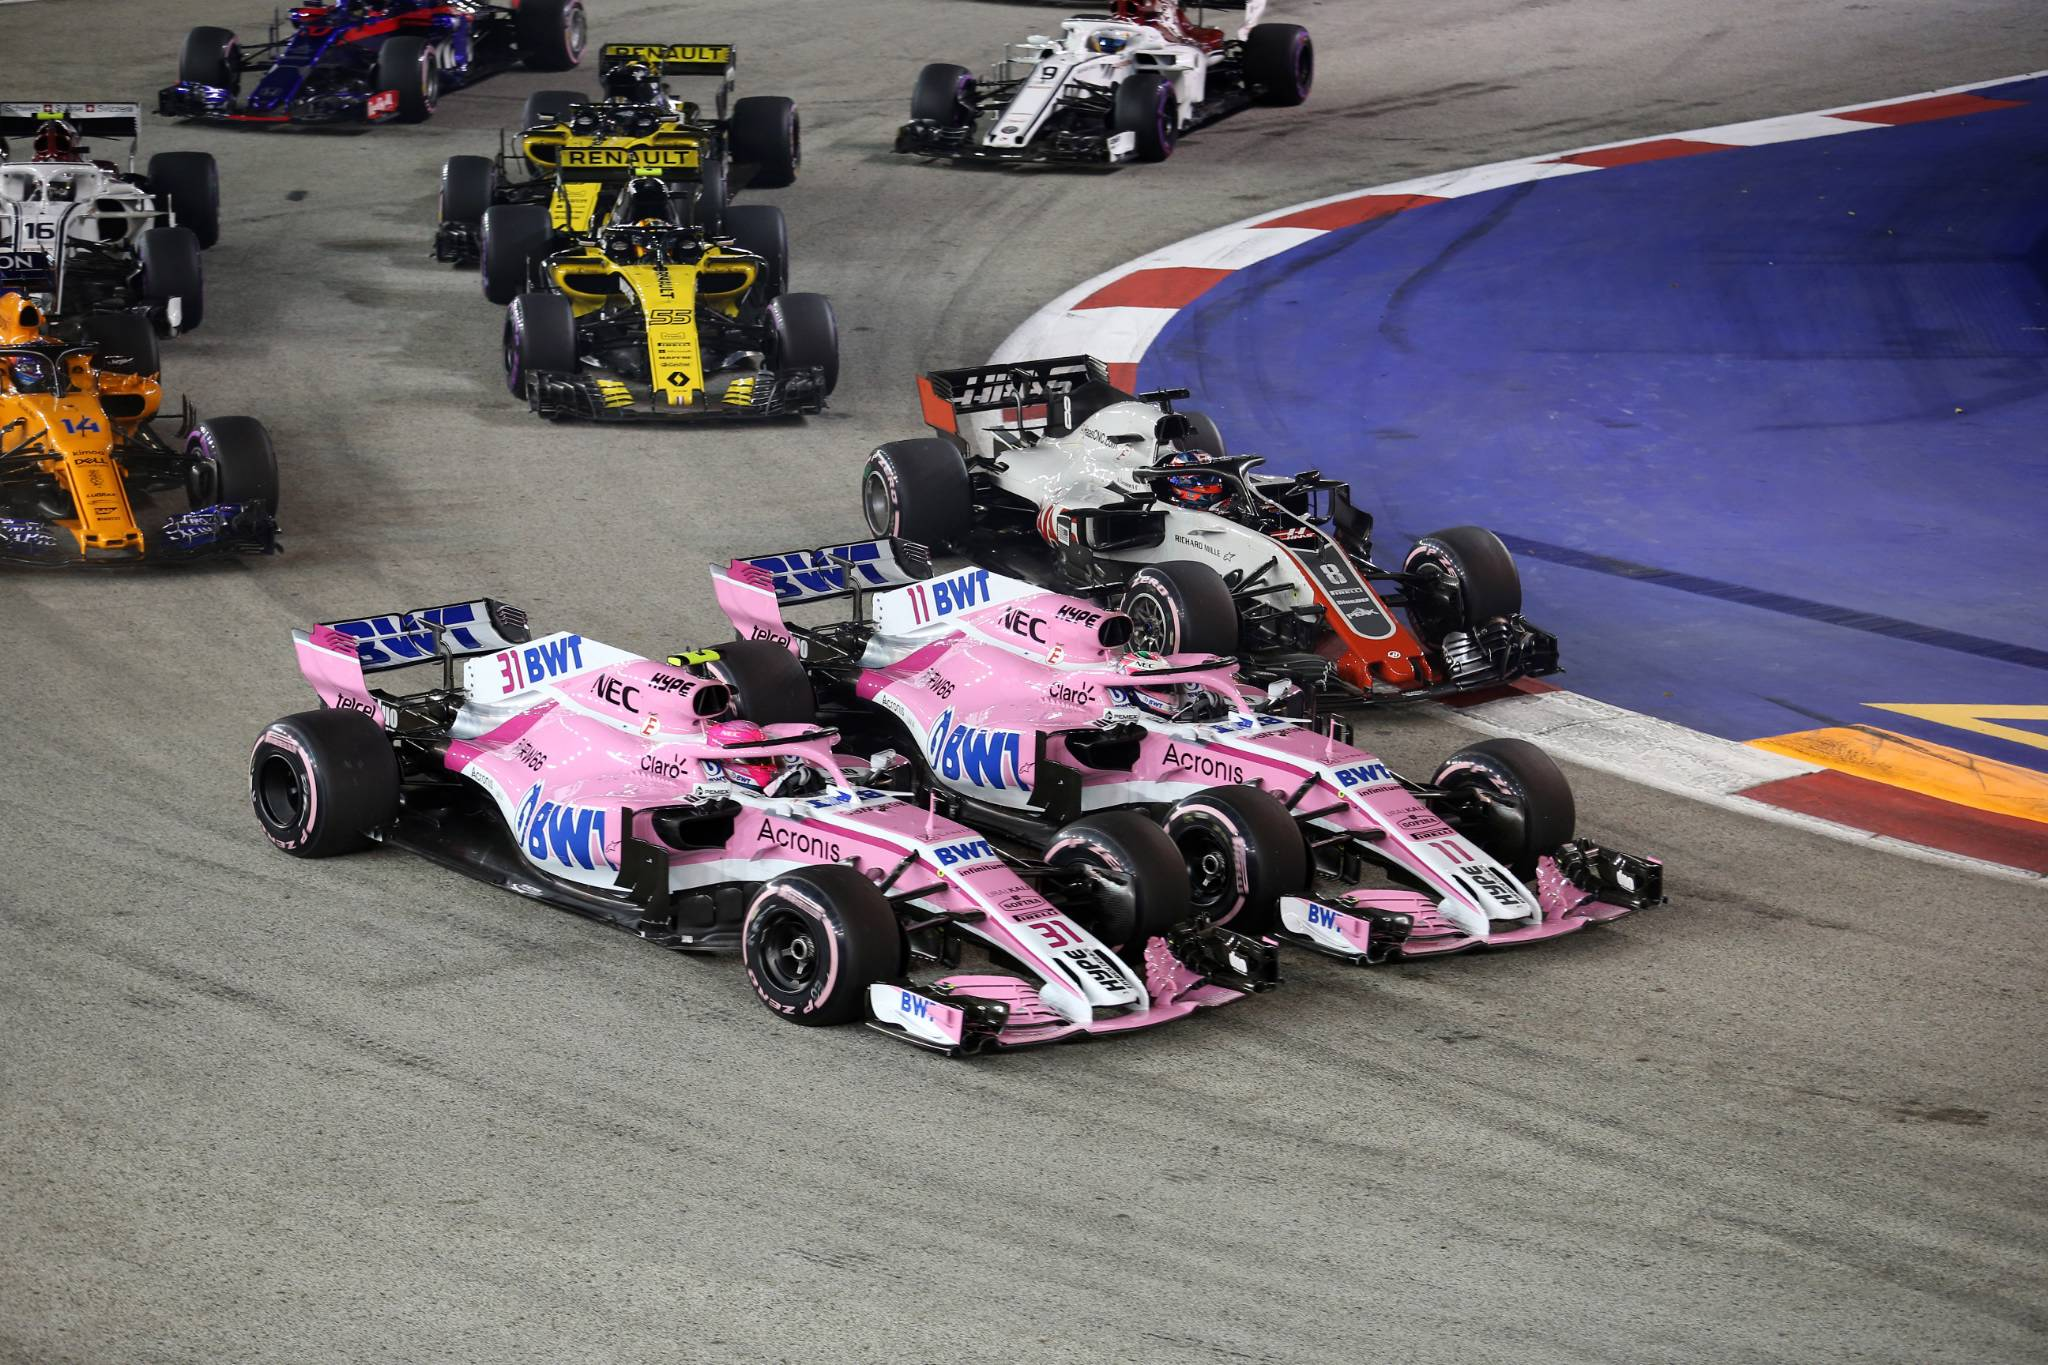 16.09.2018 - Race, Esteban Ocon (FRA) Racing Point Force India F1 VJM11 and Sergio Perez (MEX) Racing Point Force India F1 VJM11